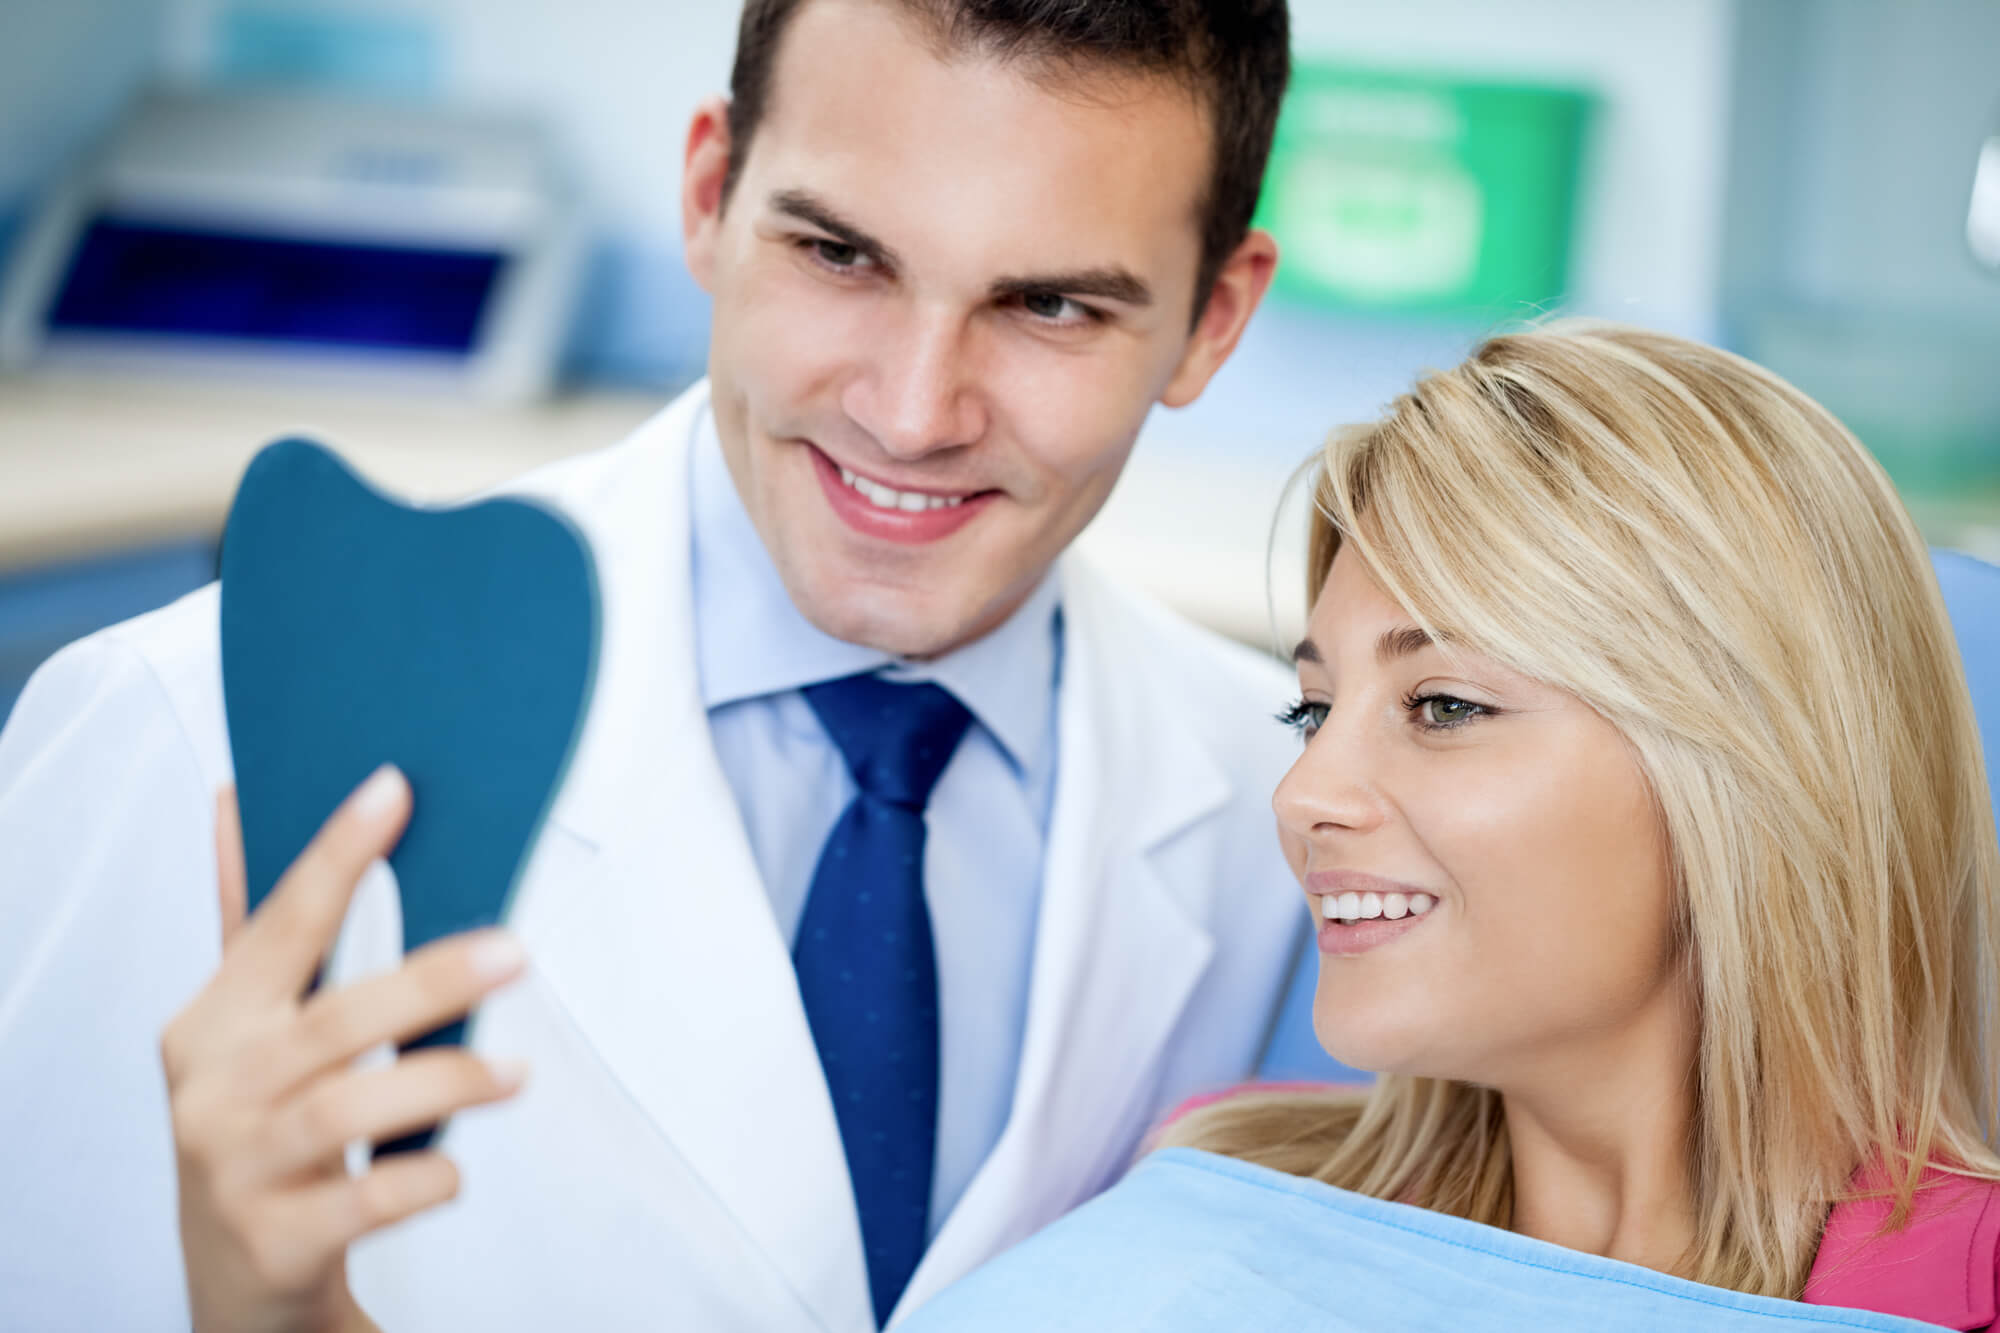 male dentist educating patient suitable for dentist positions hiring